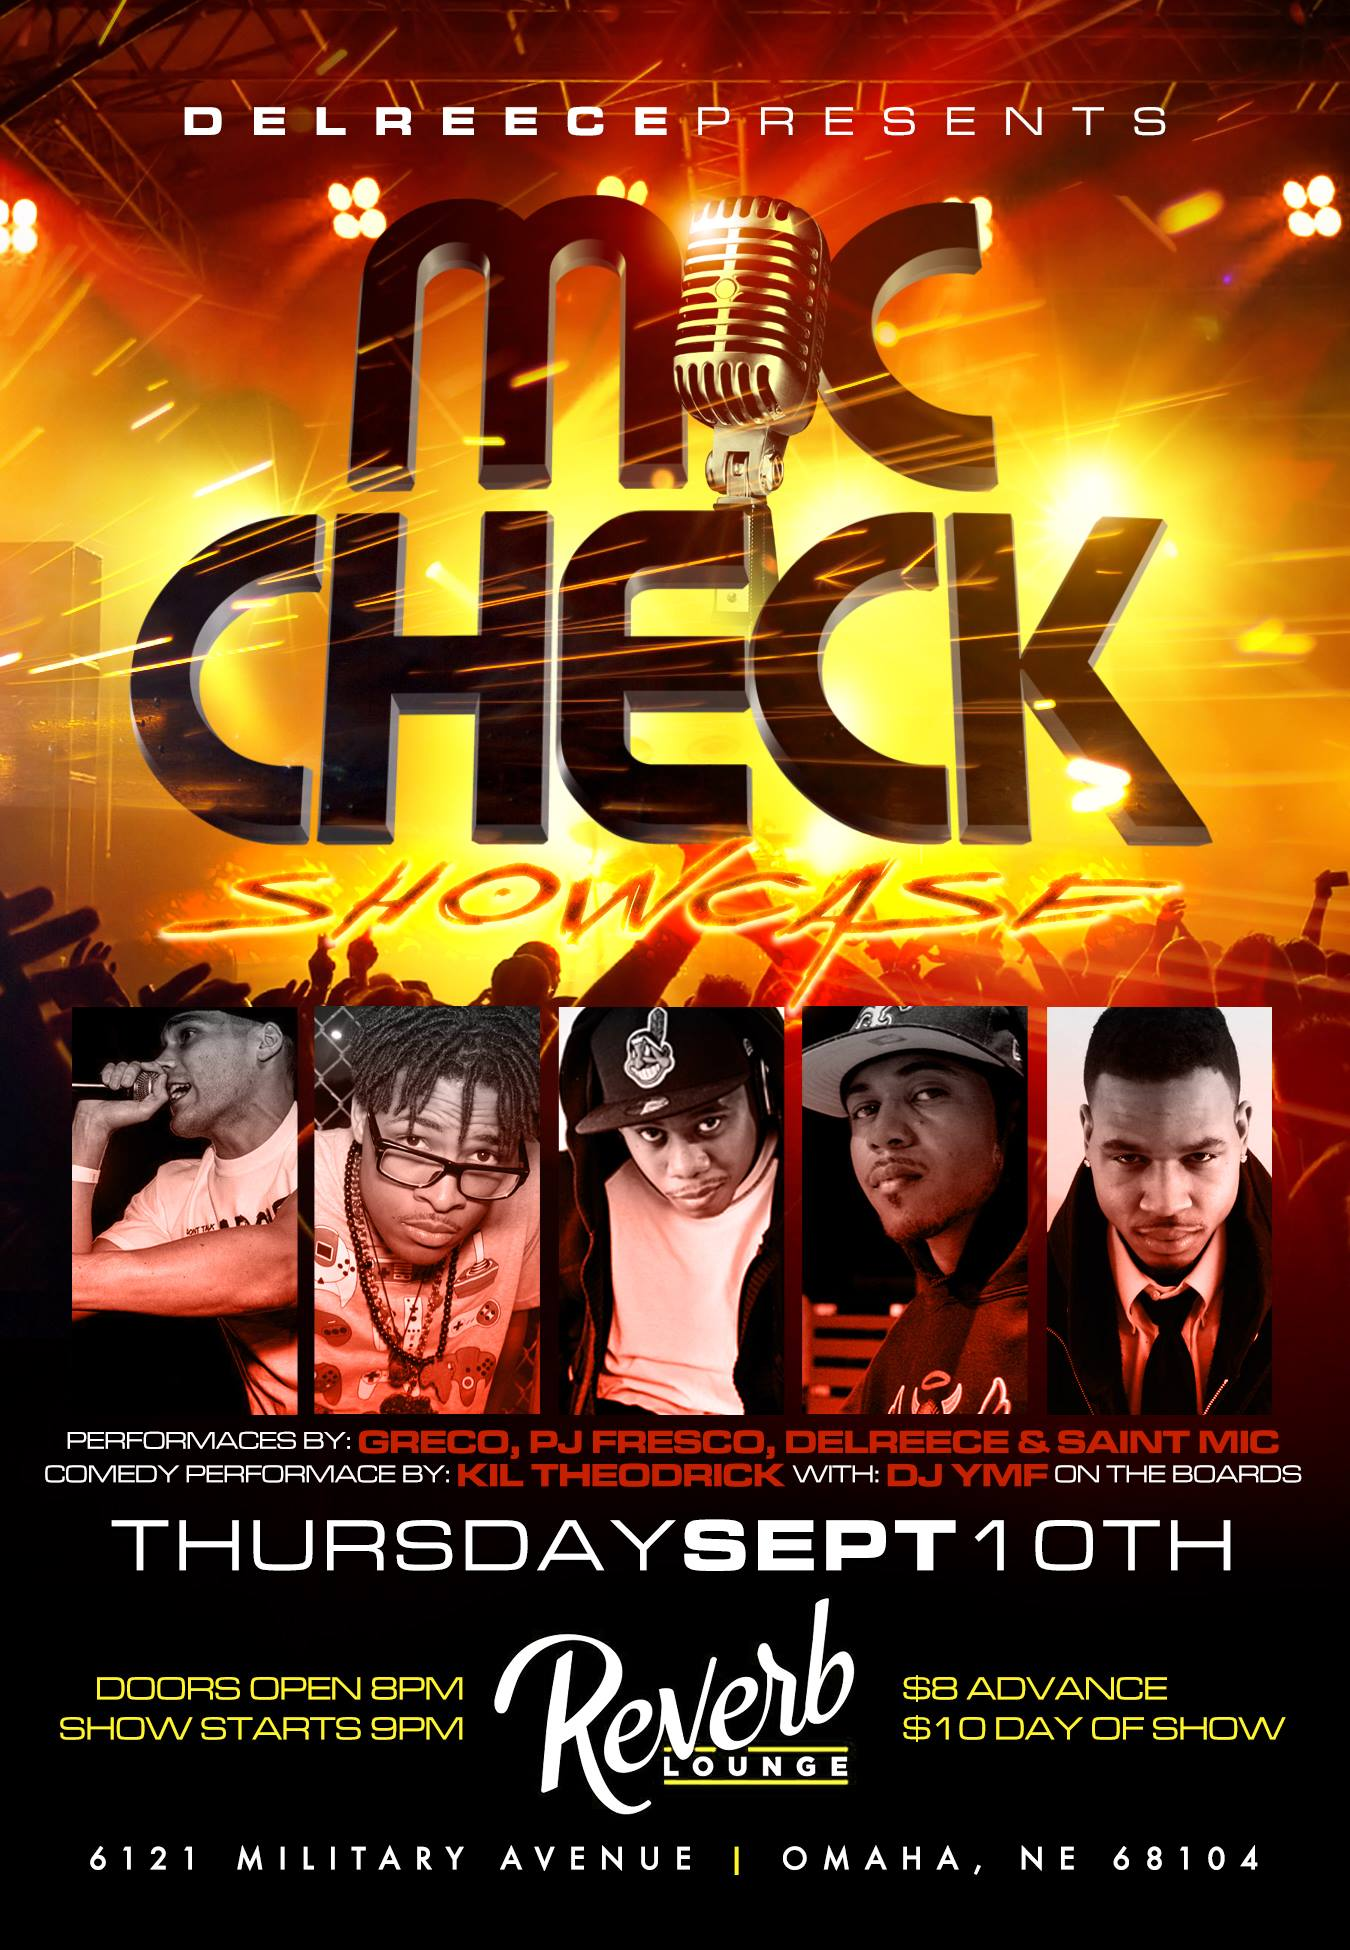 September 10, PJ Fresco performed as one of five emcees in the first 'Mic Check Showcase' in Omaha at the Reverb Lounge. This was Fresco's first public appearance.